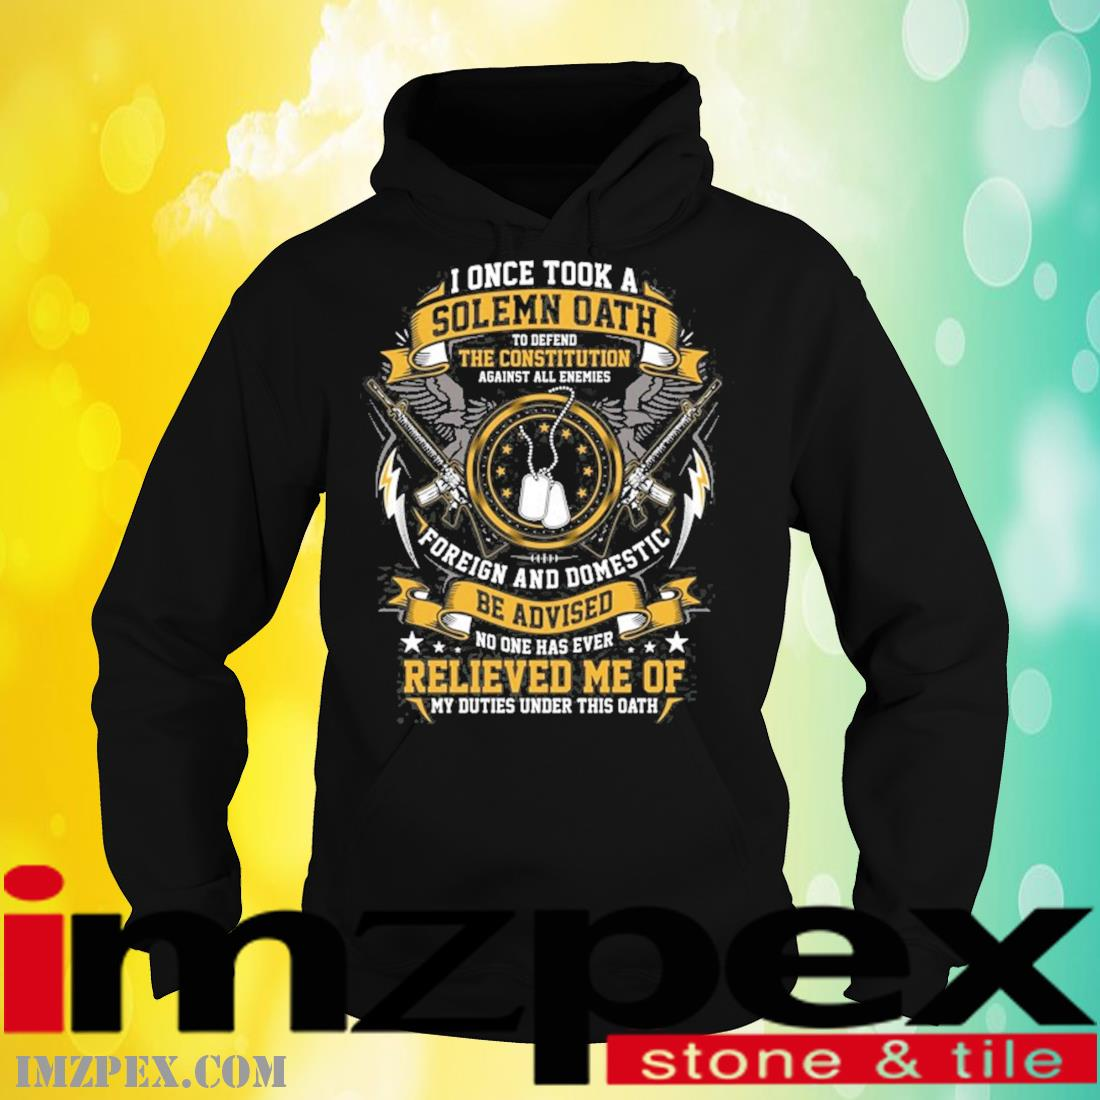 I Once Took A Solemn Oath Defend The Constitution Foreign And Domestic Be Advised Relieved Me Veteran Shirt hoodie